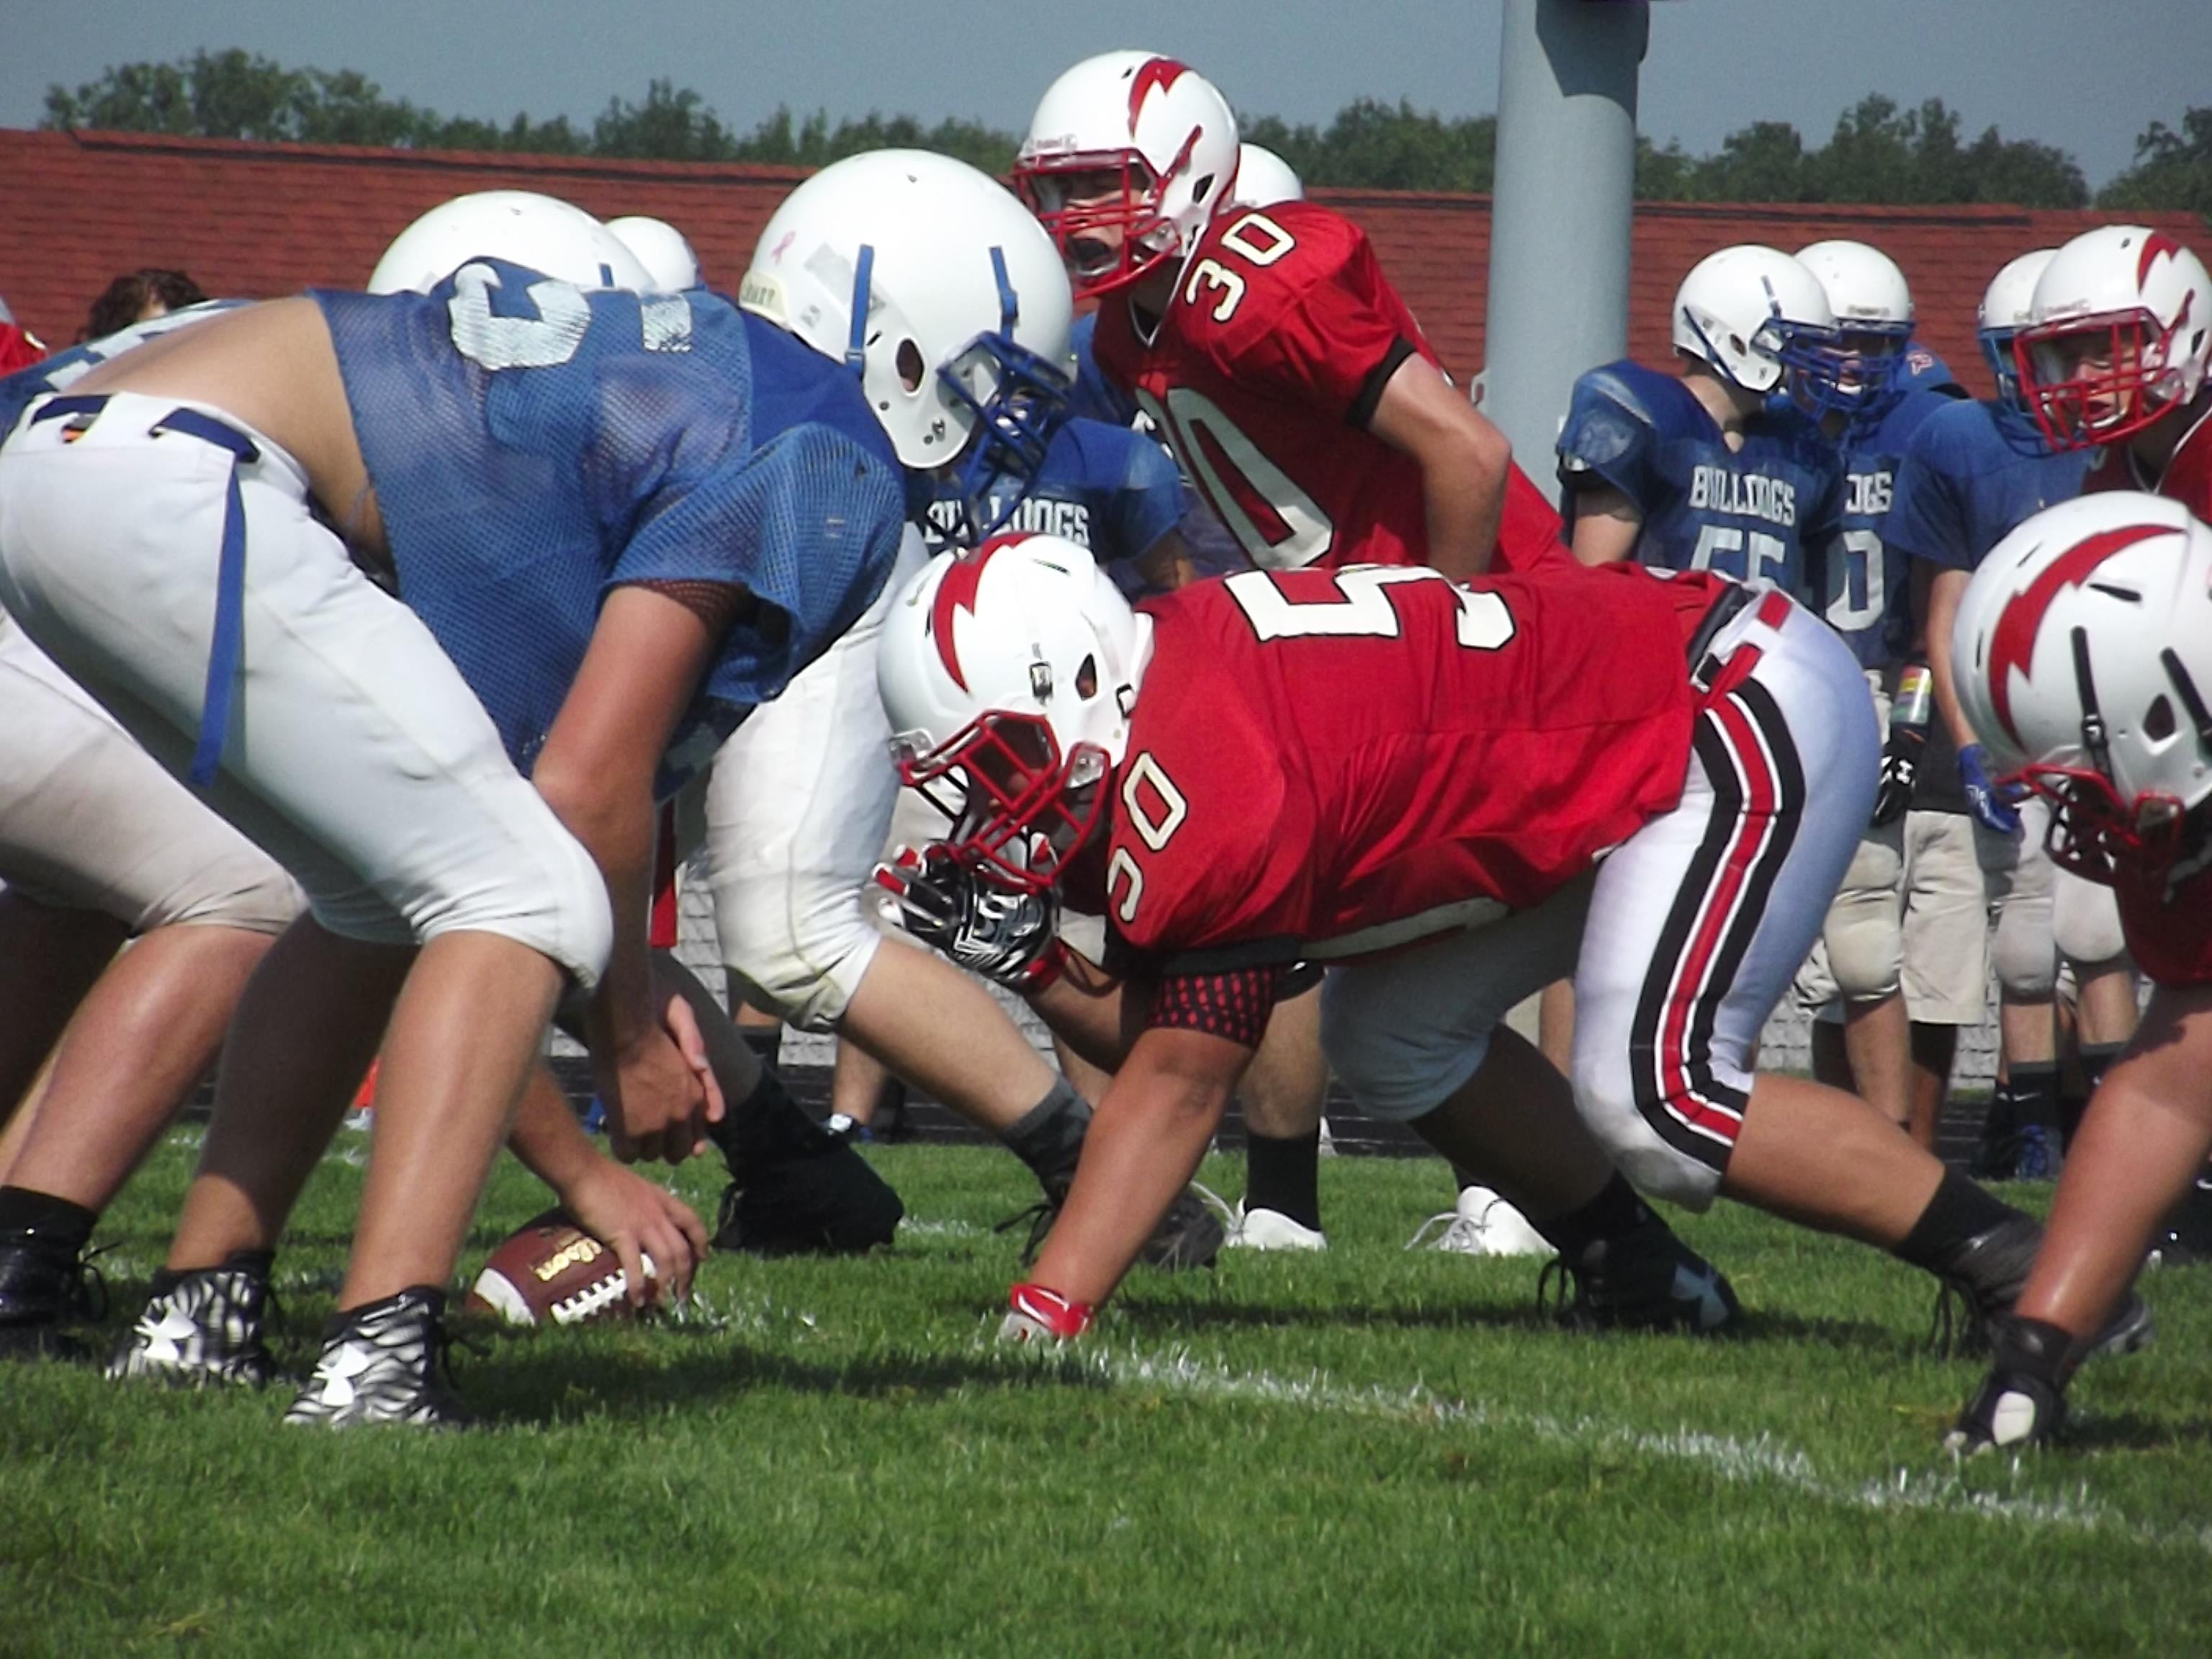 Seymour senior Trenton LaCombe lines up on the defensive line during at scrimmage Luxemburg-Casco High School Friday. LaCombe received honorable mention all-Bay Conference honors last season.